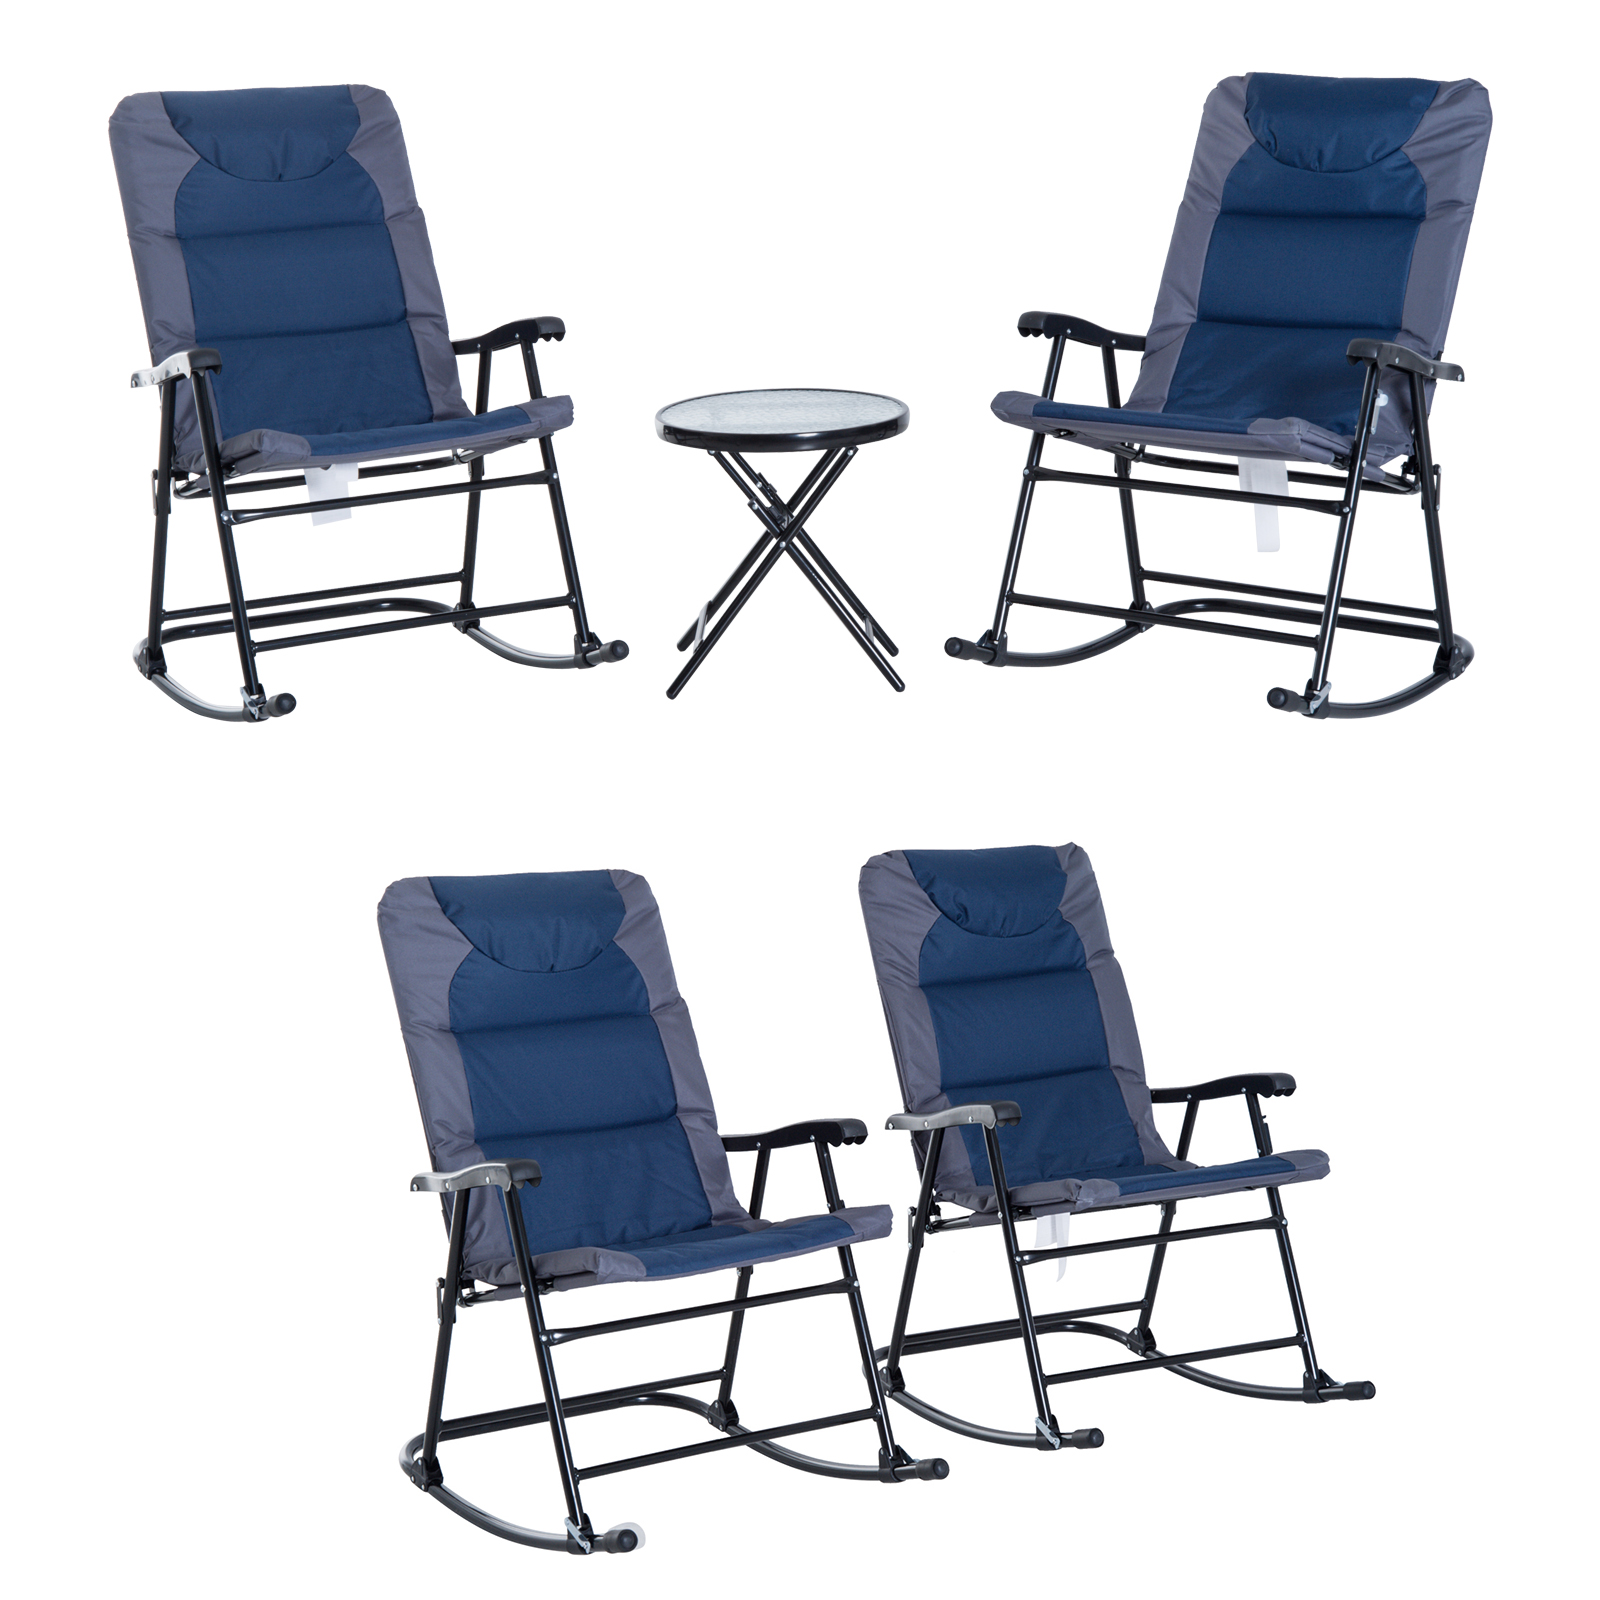 Incredible Details About 2Pc 3Pc Folding Outdoor Rocking Chair Table Set Oxford Garden Bistro Set Camping Ibusinesslaw Wood Chair Design Ideas Ibusinesslaworg